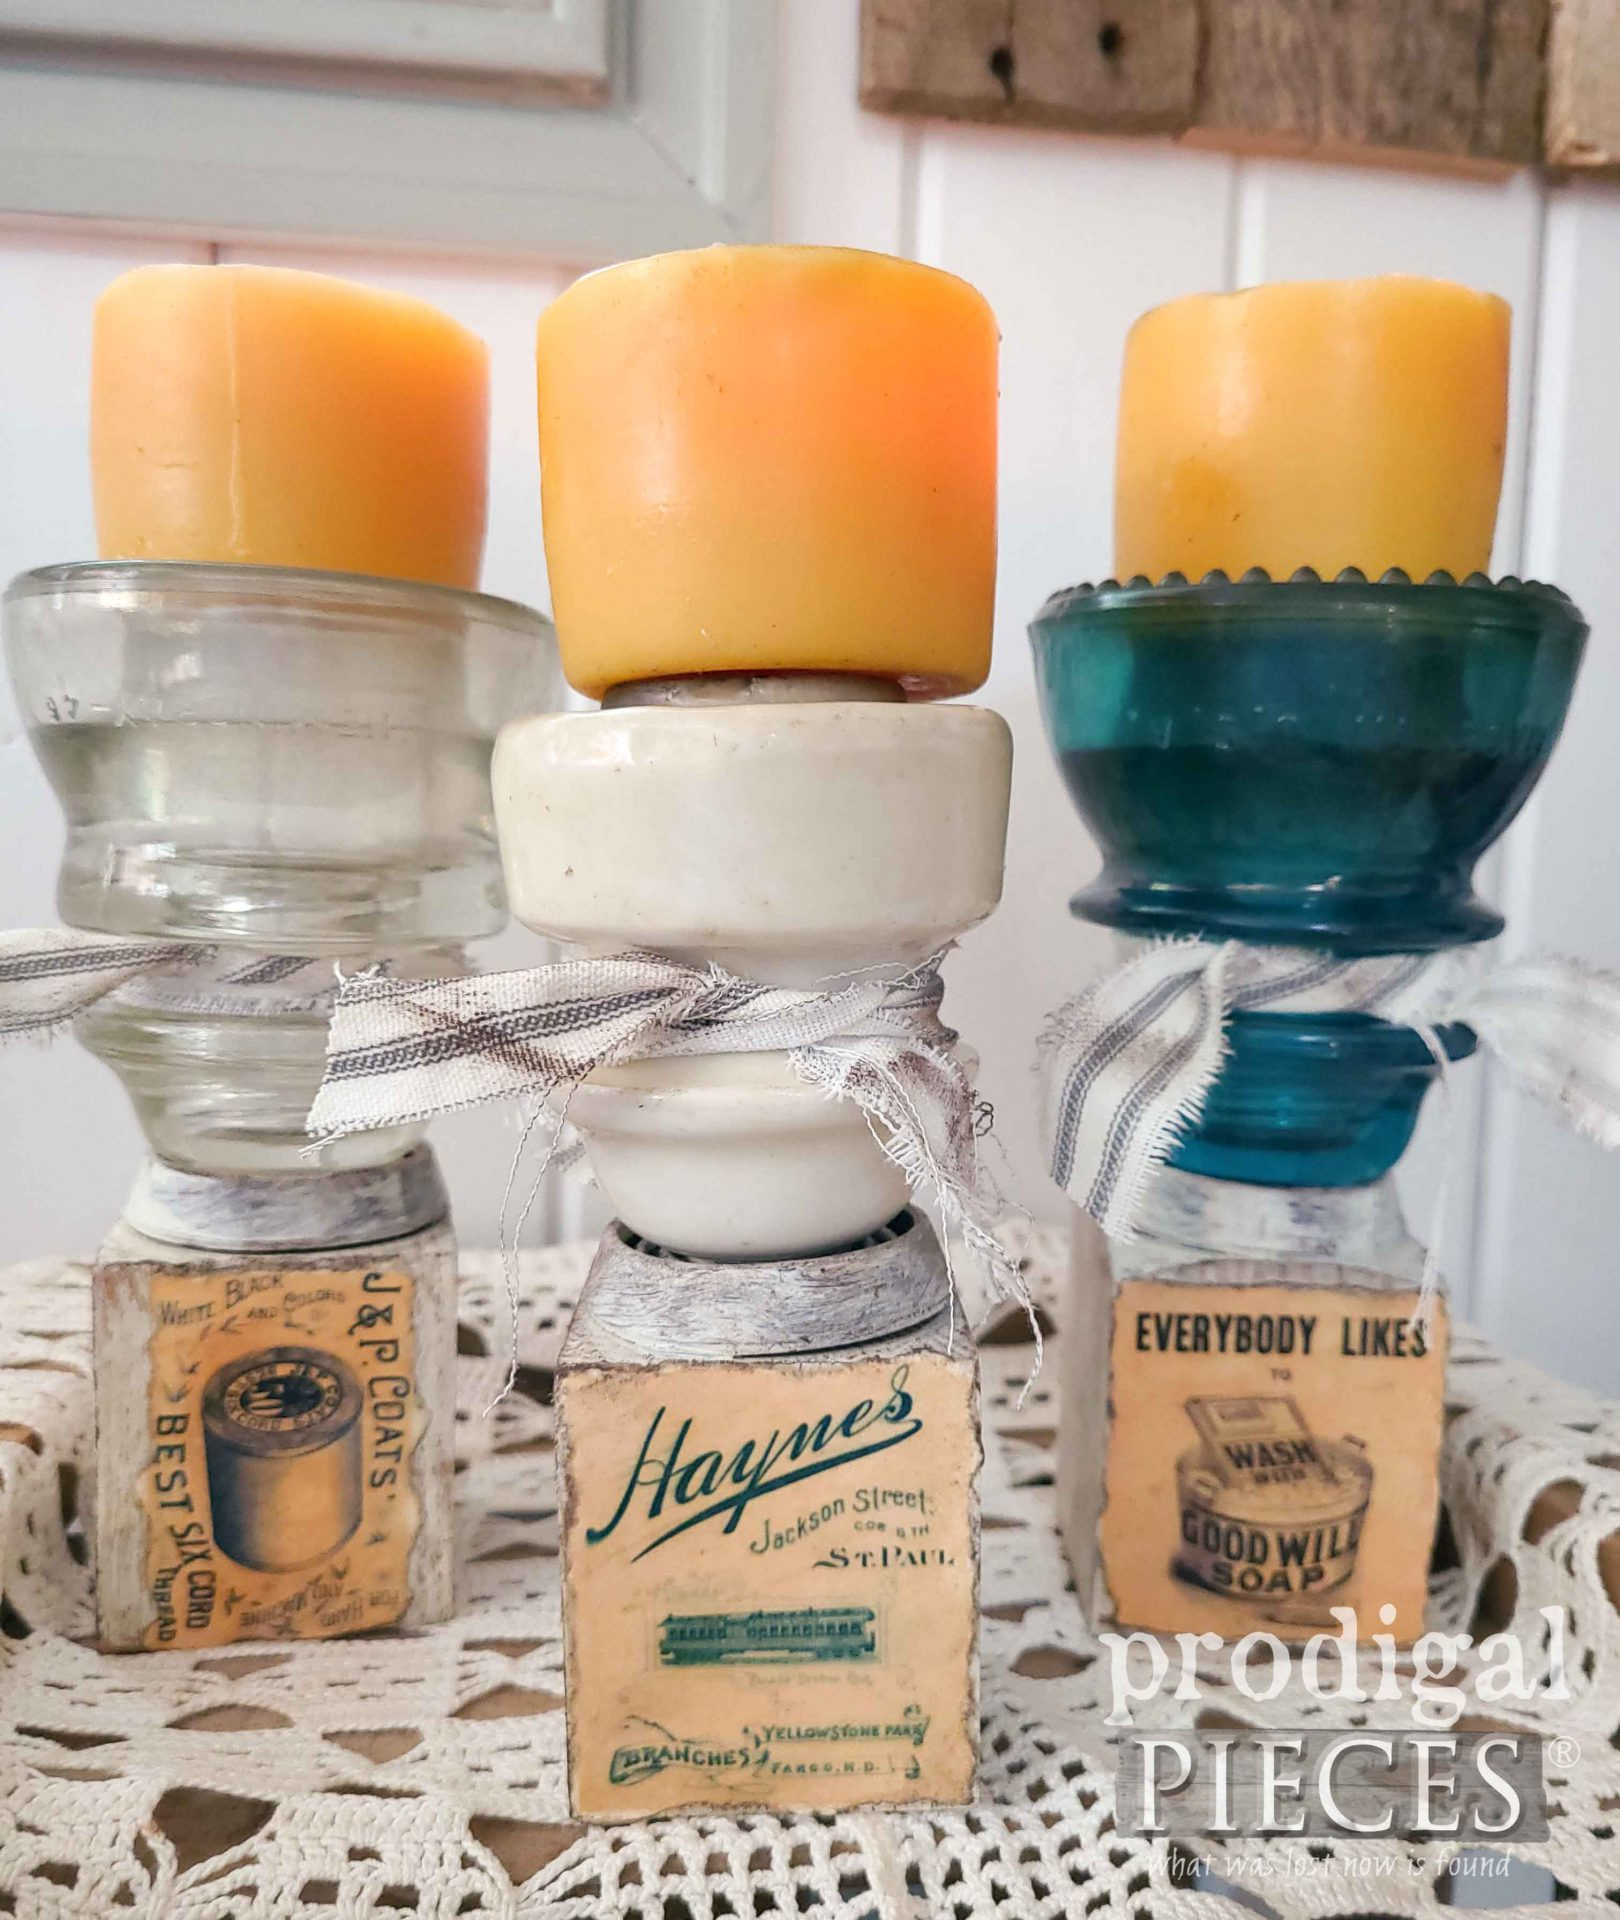 Upcycled Antique Insulator Candle Holders for Farmhouse Decor by Larissa of Prodigal Pieces | prodigalpieces.com #prodigalpieces #farmhouse #home #upcycled #homedecor